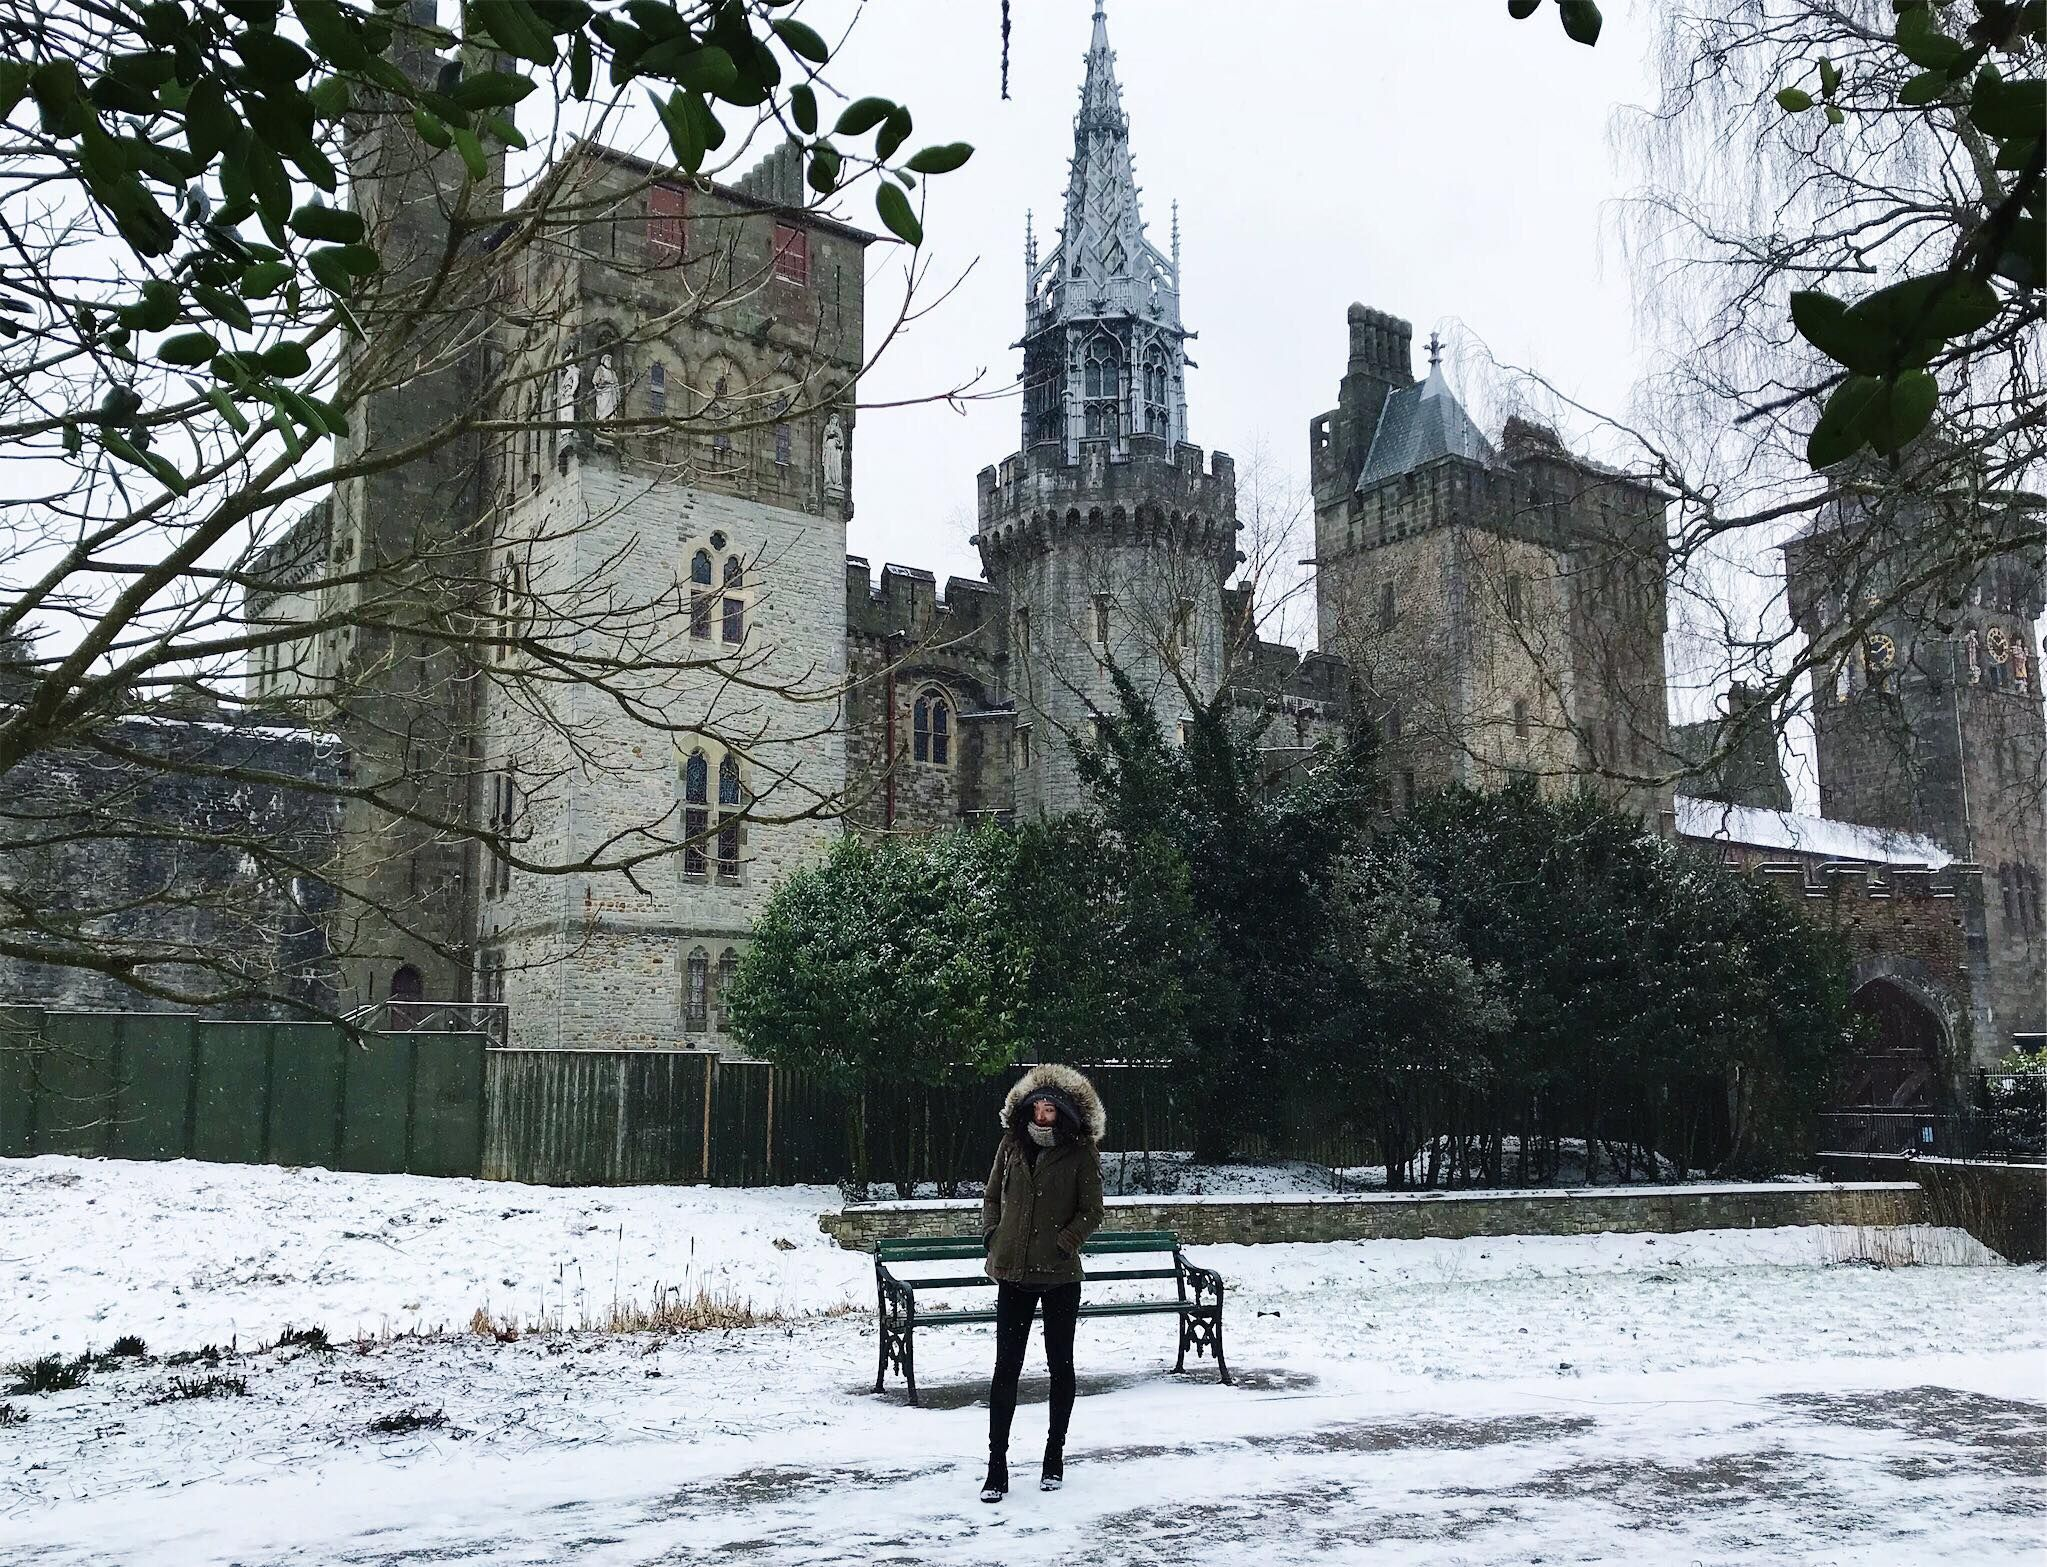 Image may contain: Ivy, Bench, Snow, Outdoors, Tree, Plant, Flora, Coat, Clothing, Worship, Church, Cathedral, Building, Architecture